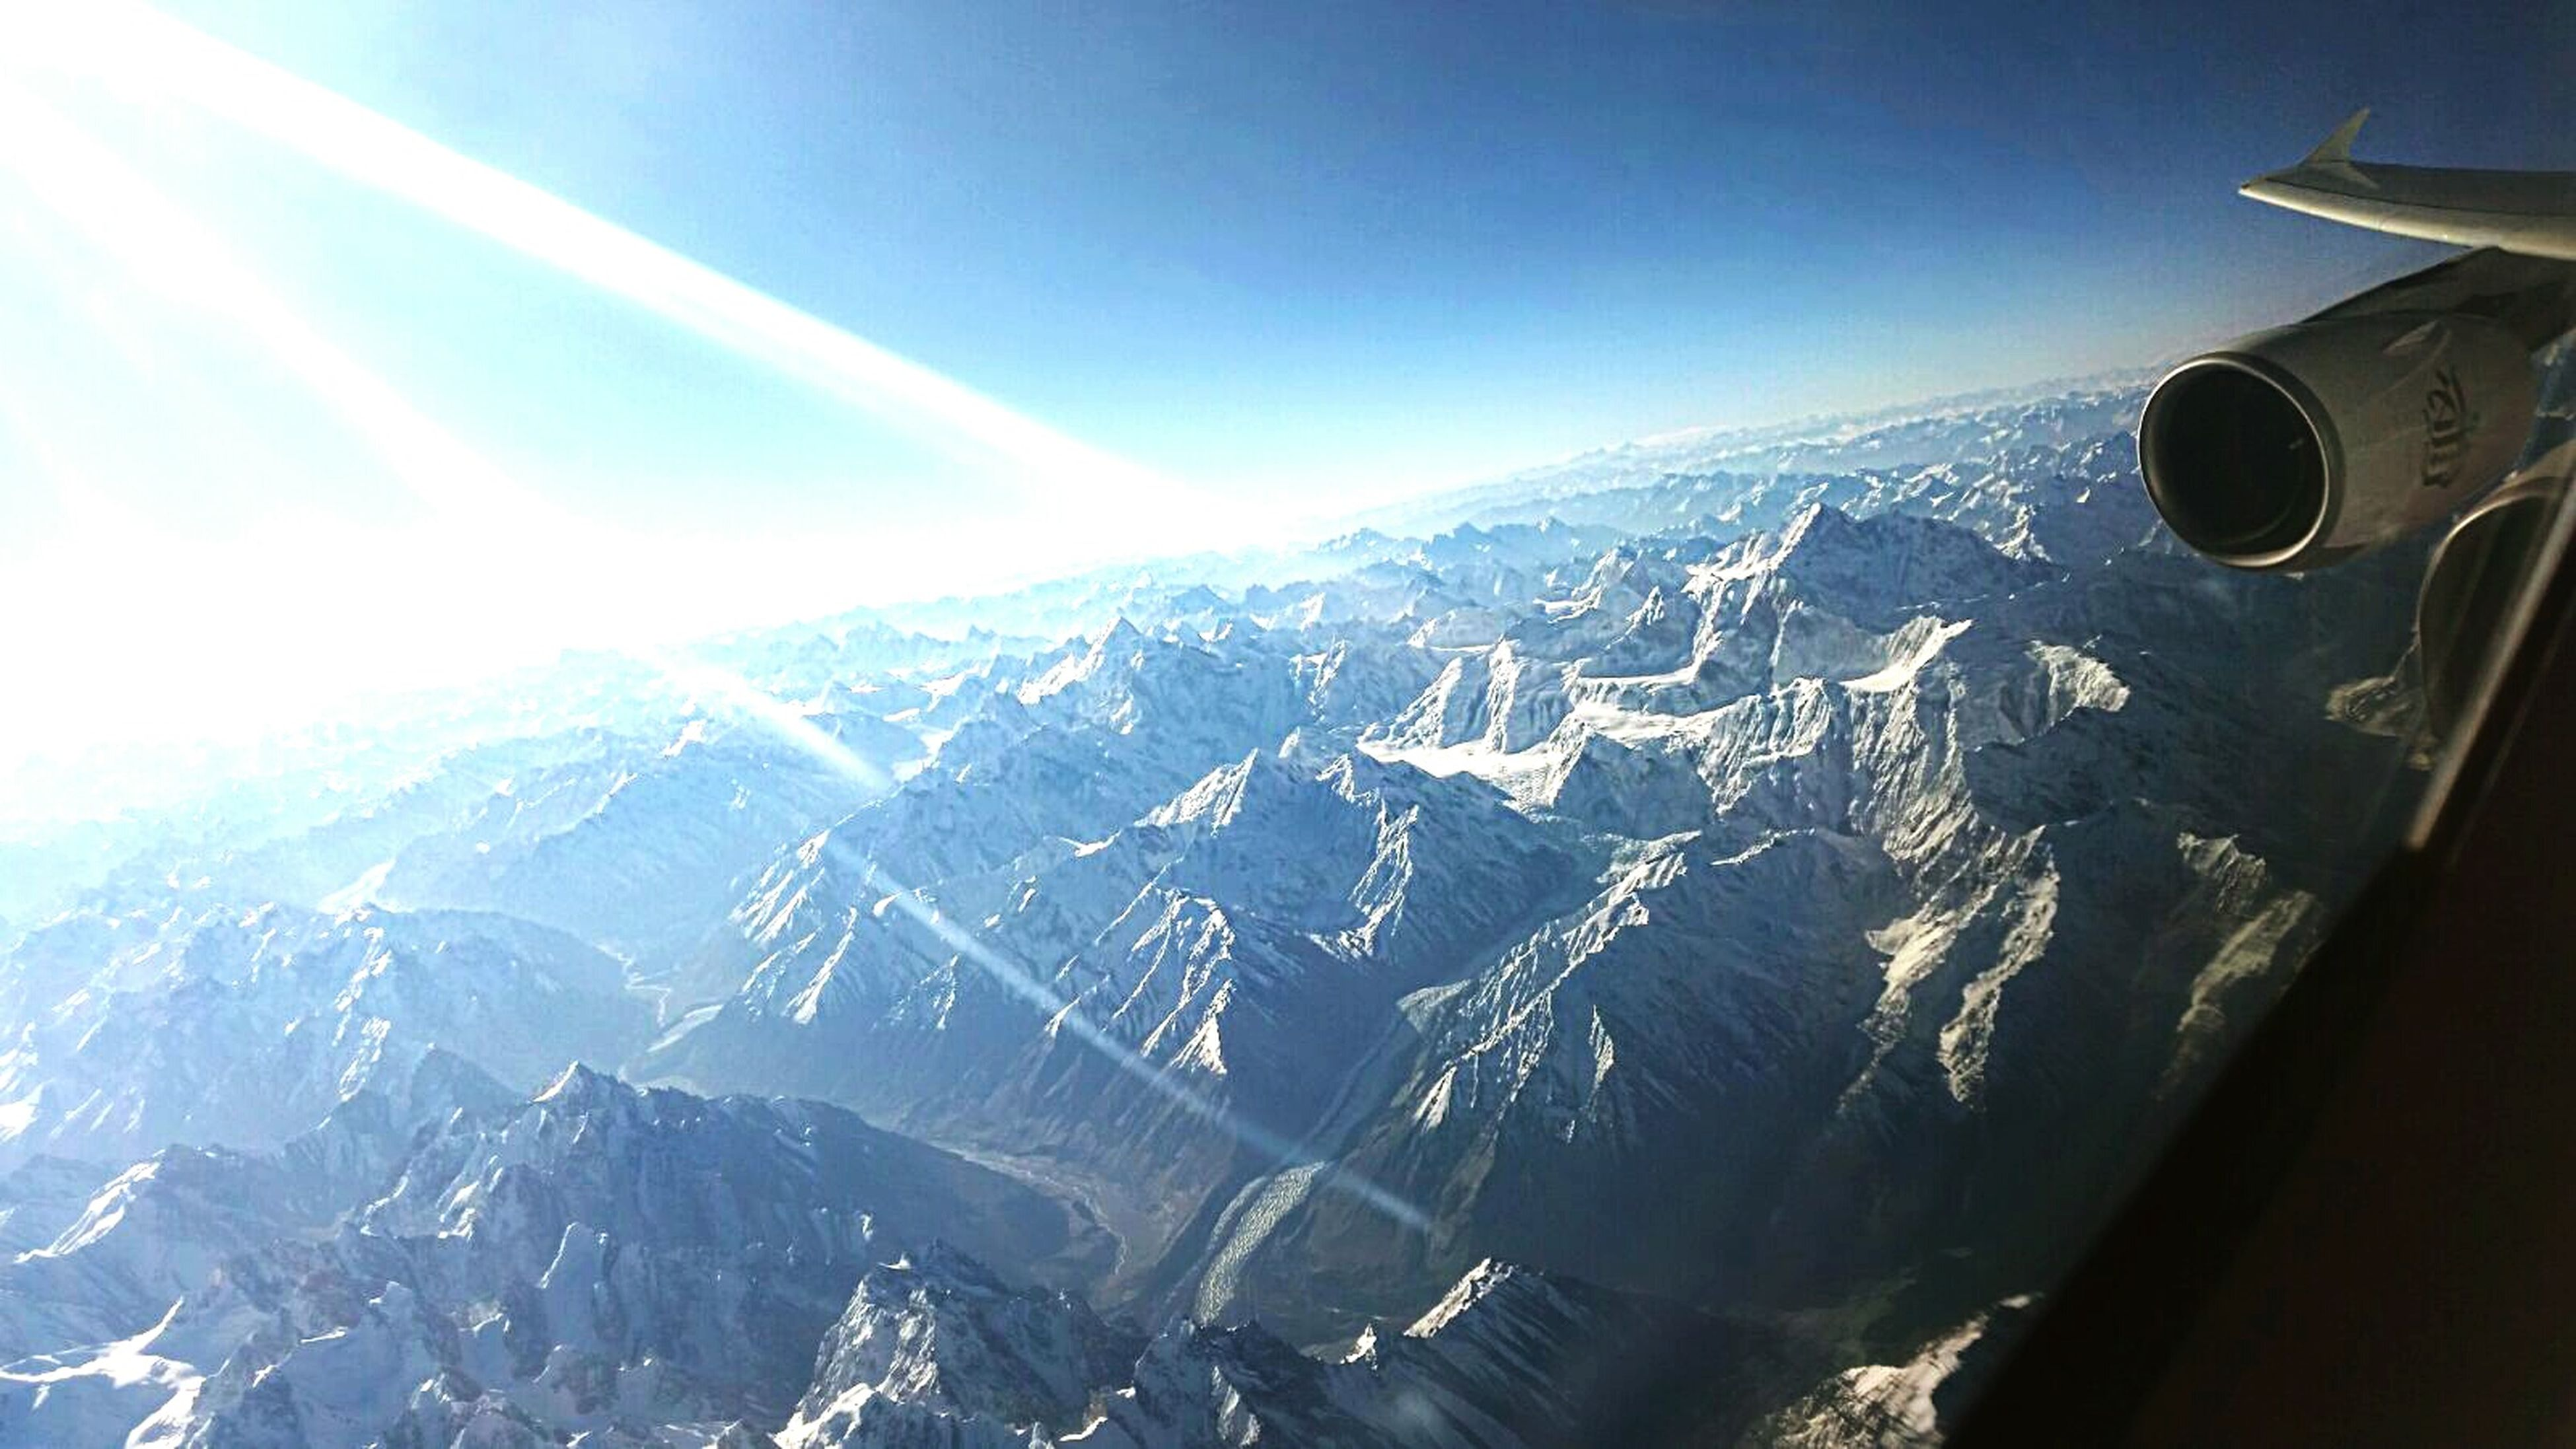 mountain, transportation, air vehicle, mode of transport, airplane, landscape, scenics, mountain range, blue, snow, aircraft wing, beauty in nature, snowcapped mountain, sky, aerial view, flying, travel, part of, nature, cropped